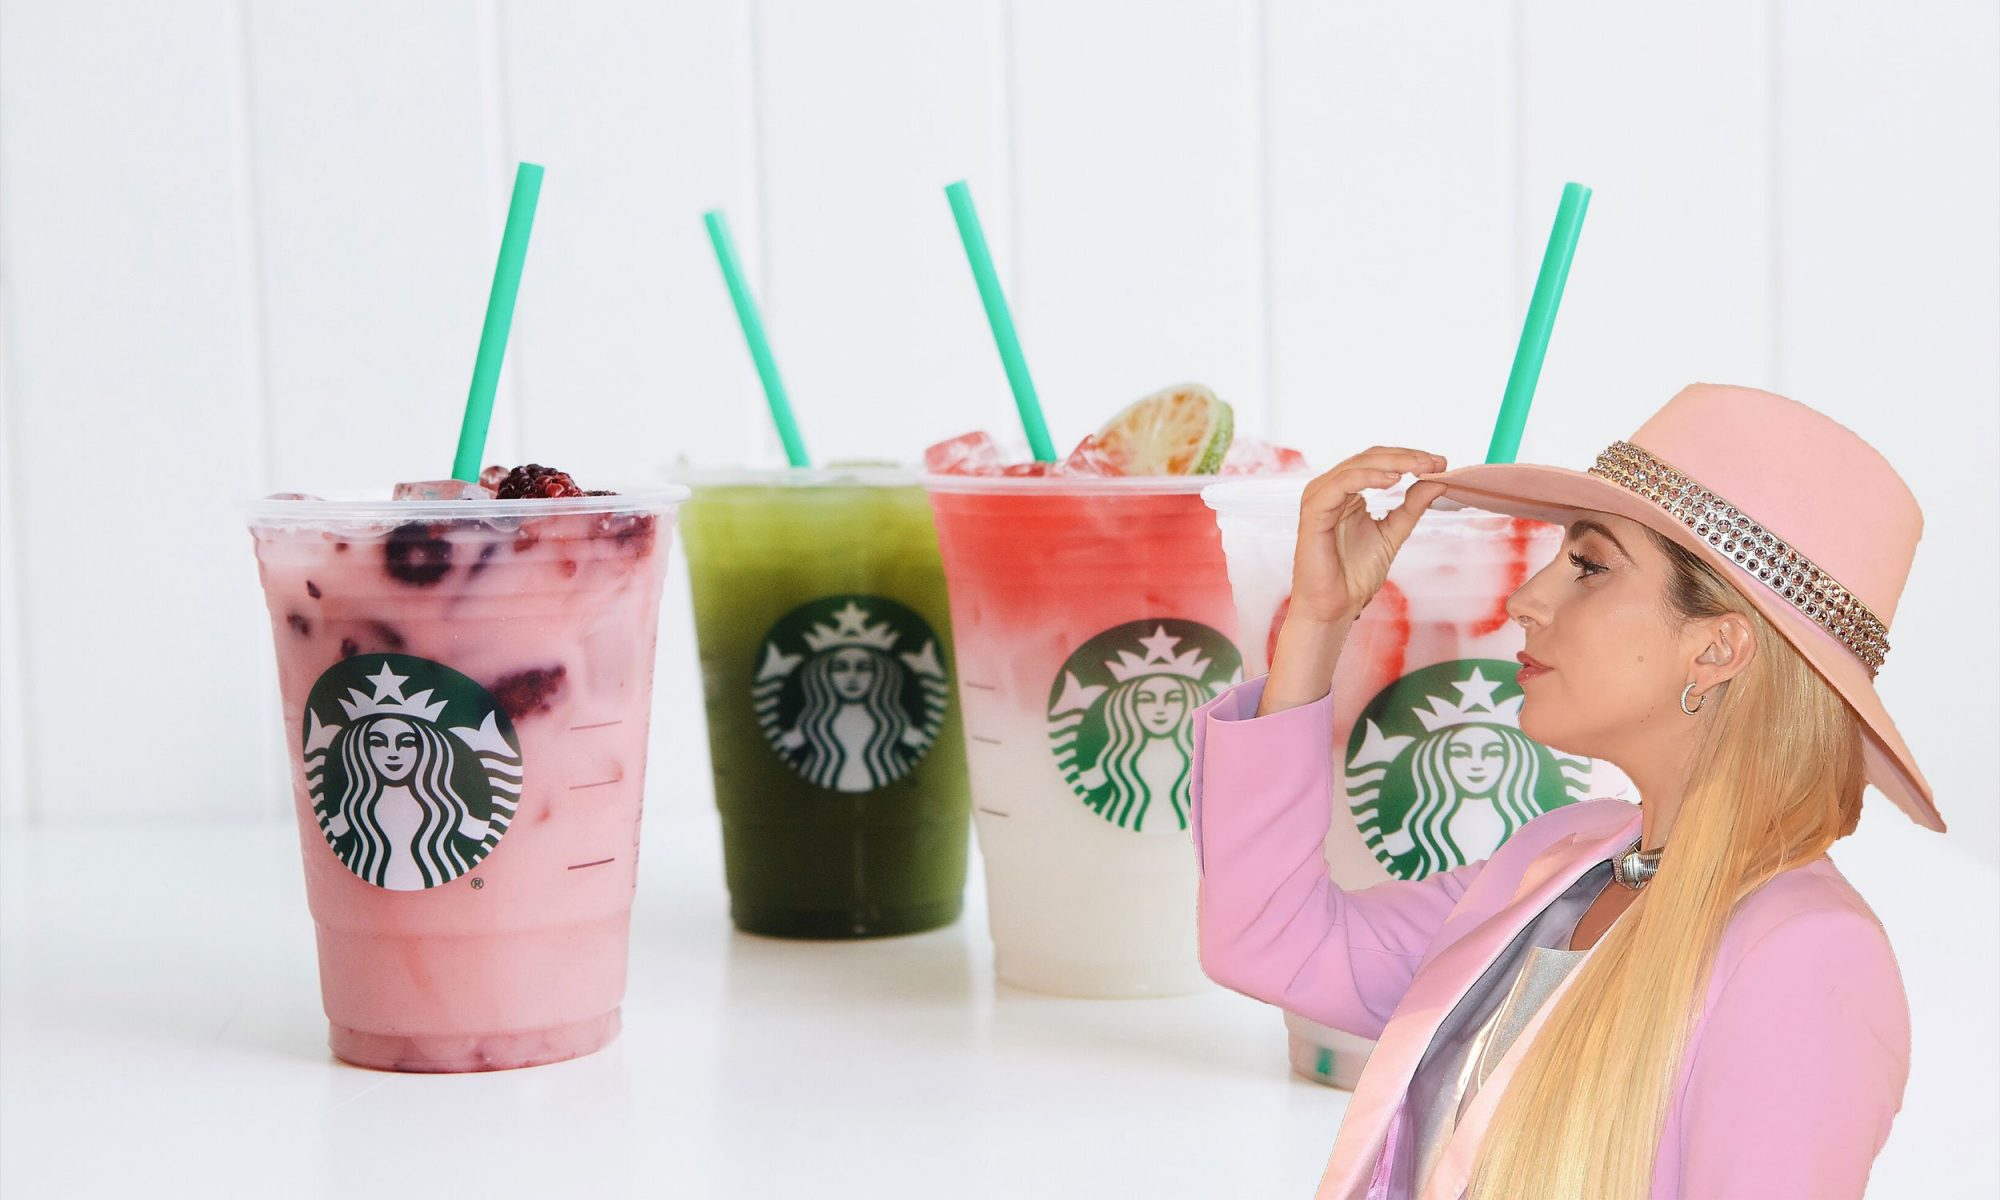 EC: Lady Gaga Created These New Starbucks Drinks for a Good Cause